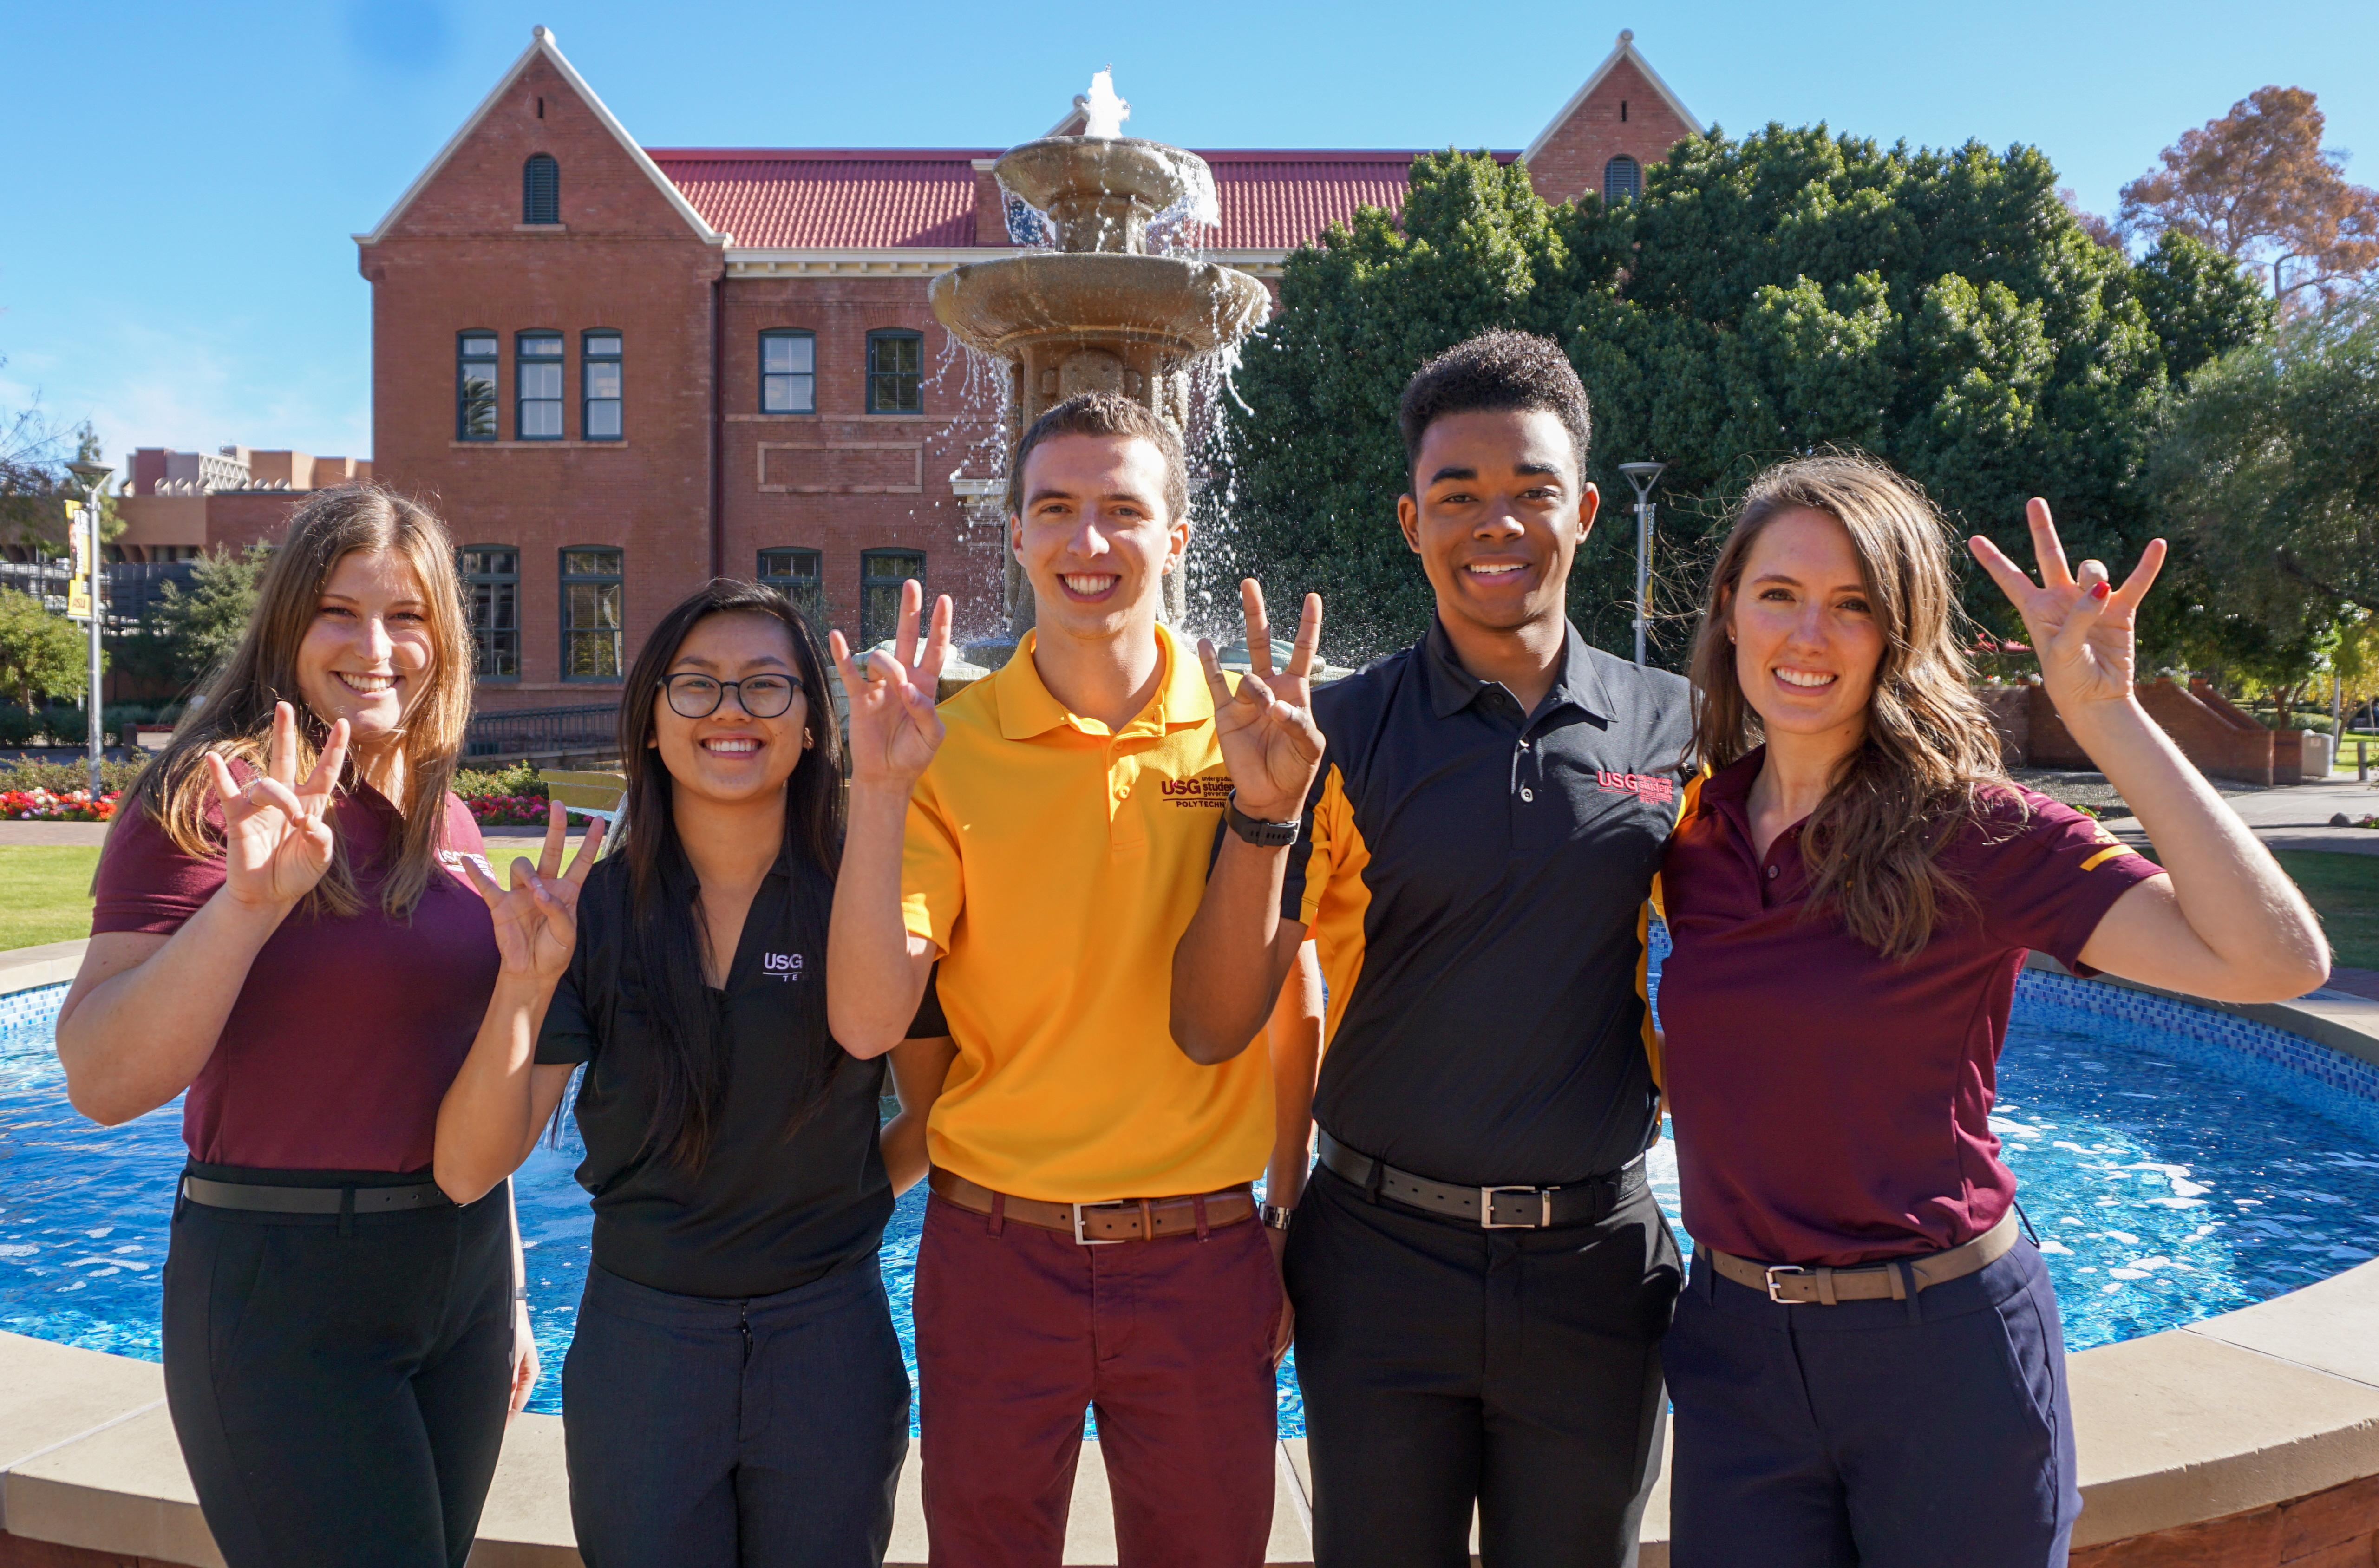 ASU's Council of Presidents, the student body presidents of the Tempe, Polytechnic, Downtown, West and graduate student organization